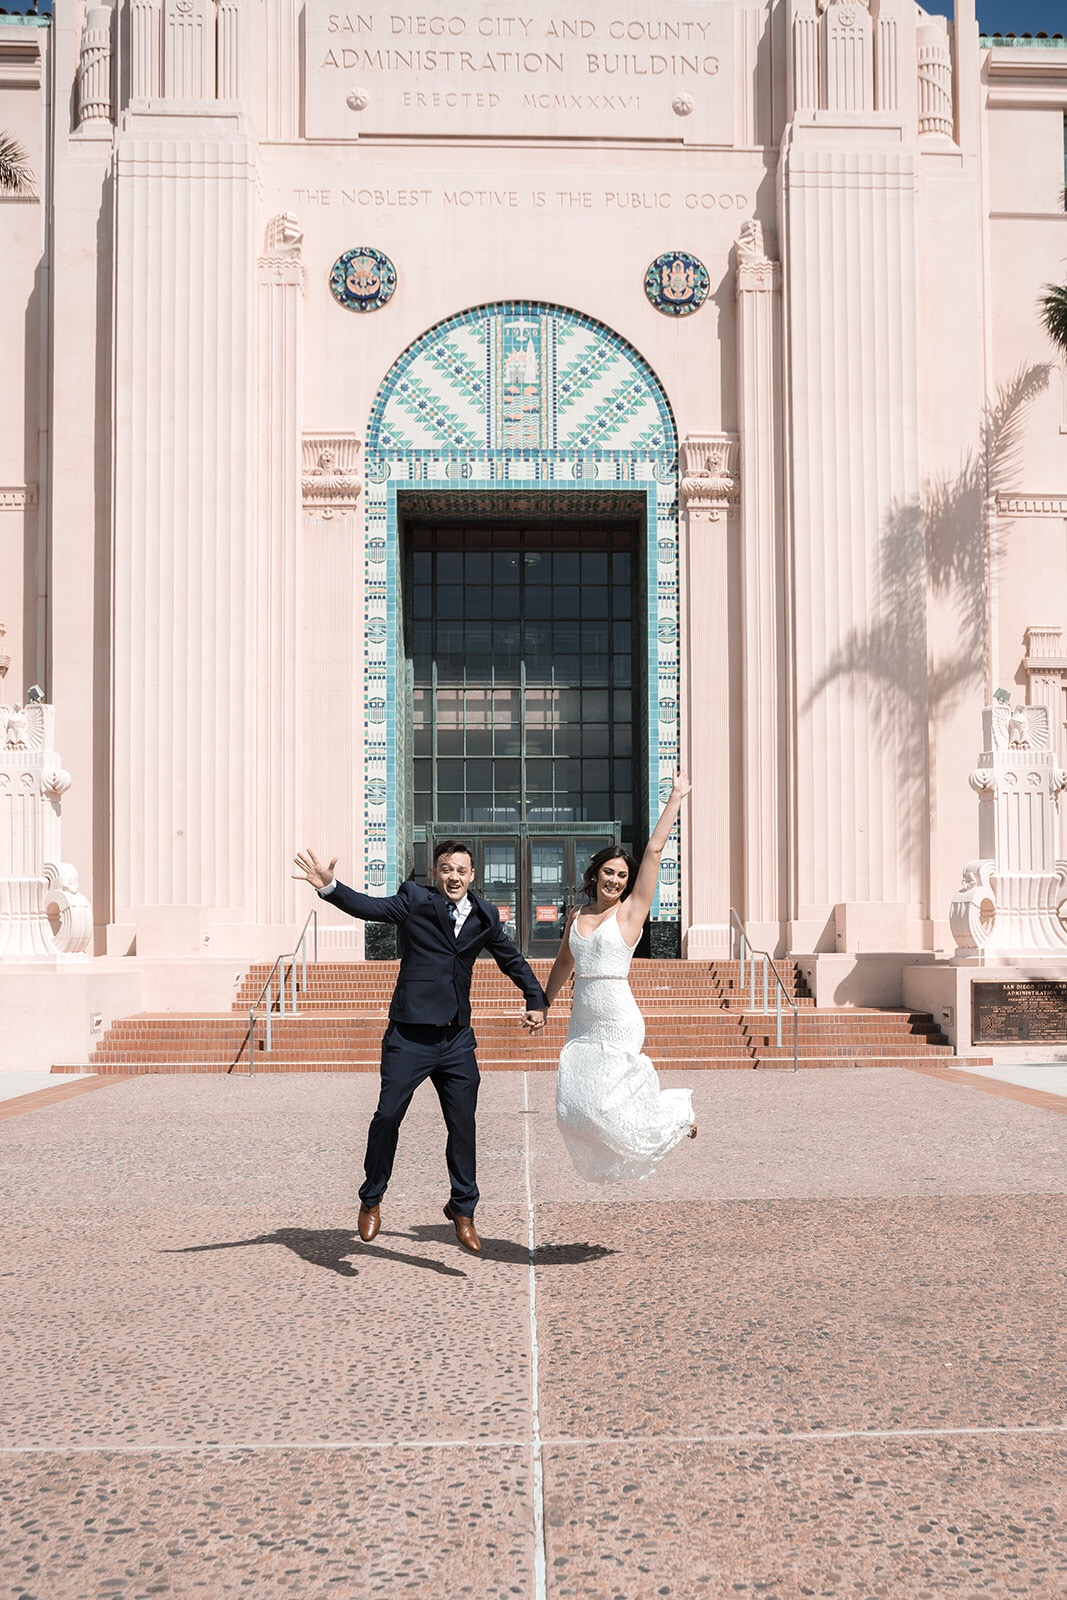 San Diego Courthouse Weddings outdoors